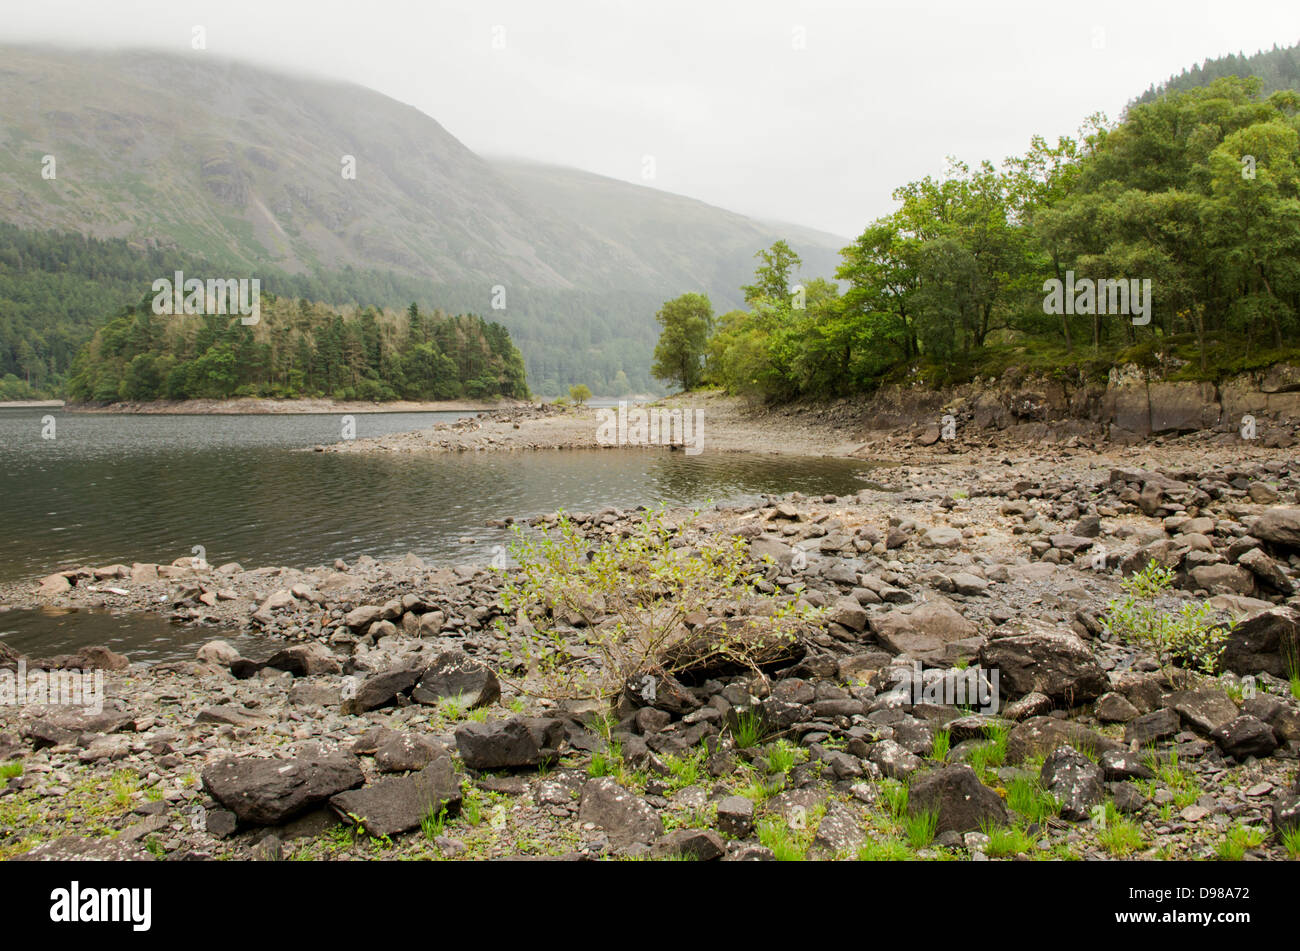 Low water level in Thirlmere reservoir after a dry winter and spring. Bare rocks and island. - Stock Image